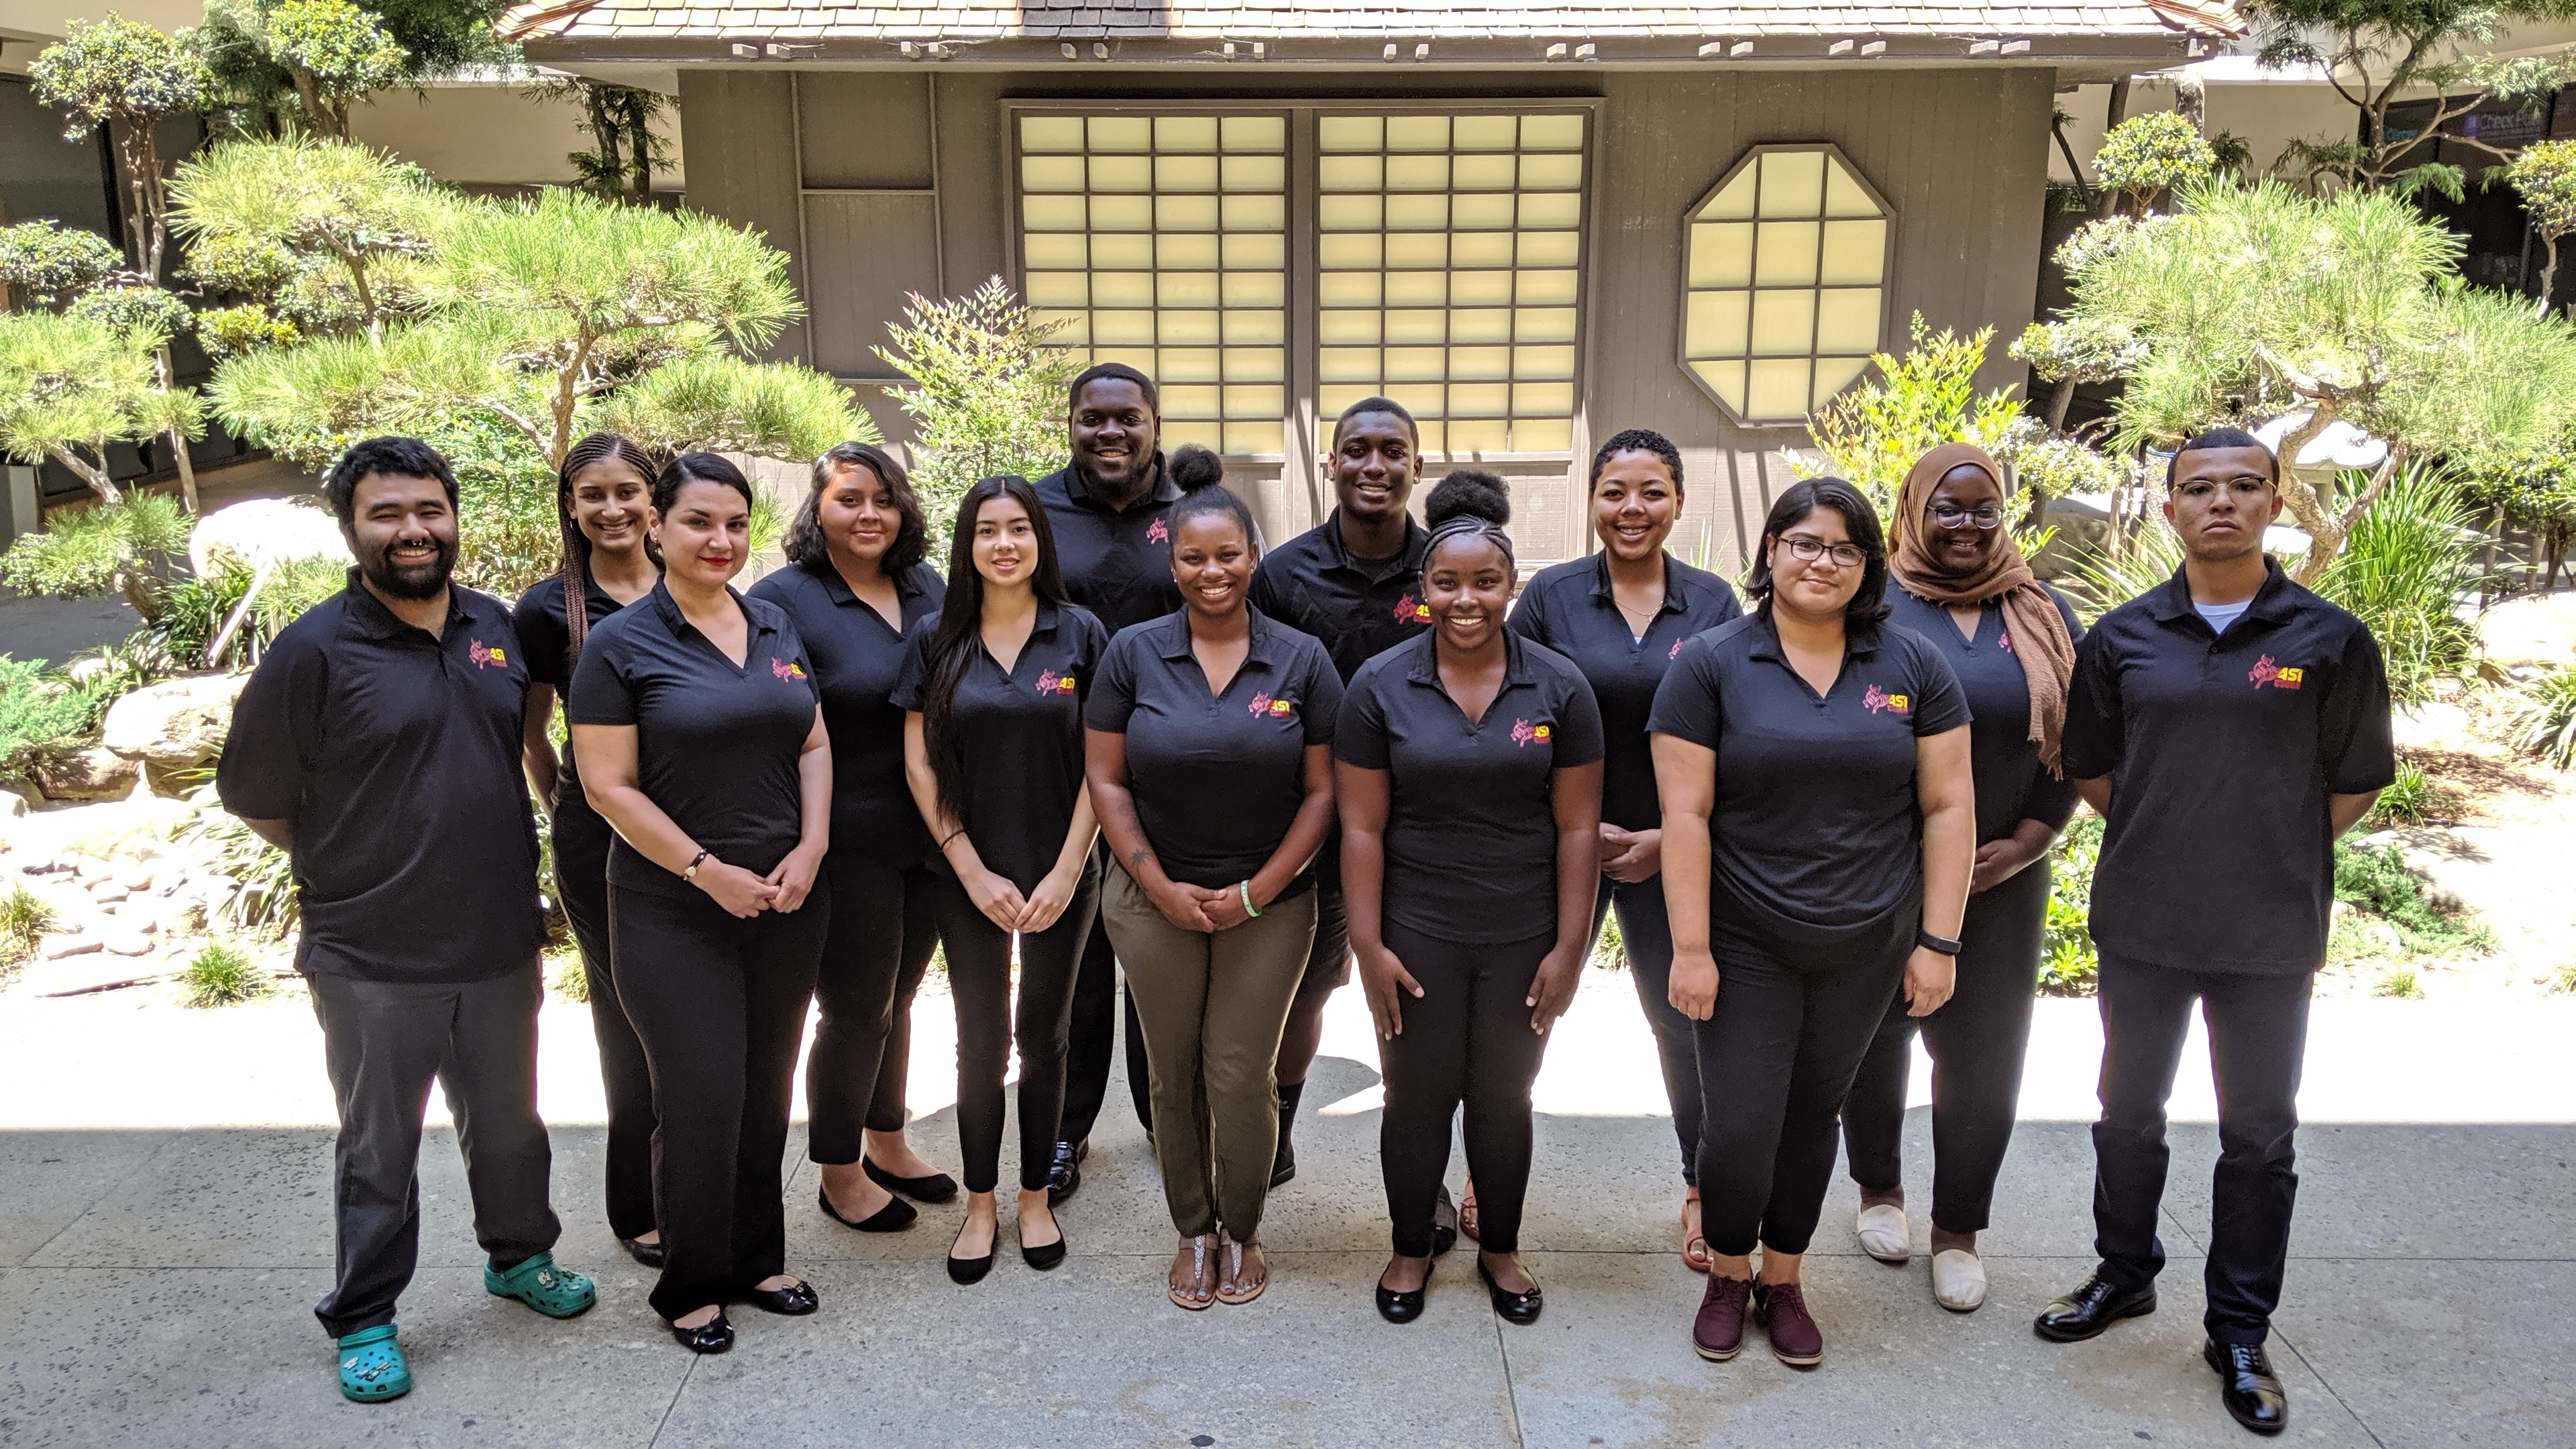 The official student voice of CSU Dominguez Hills